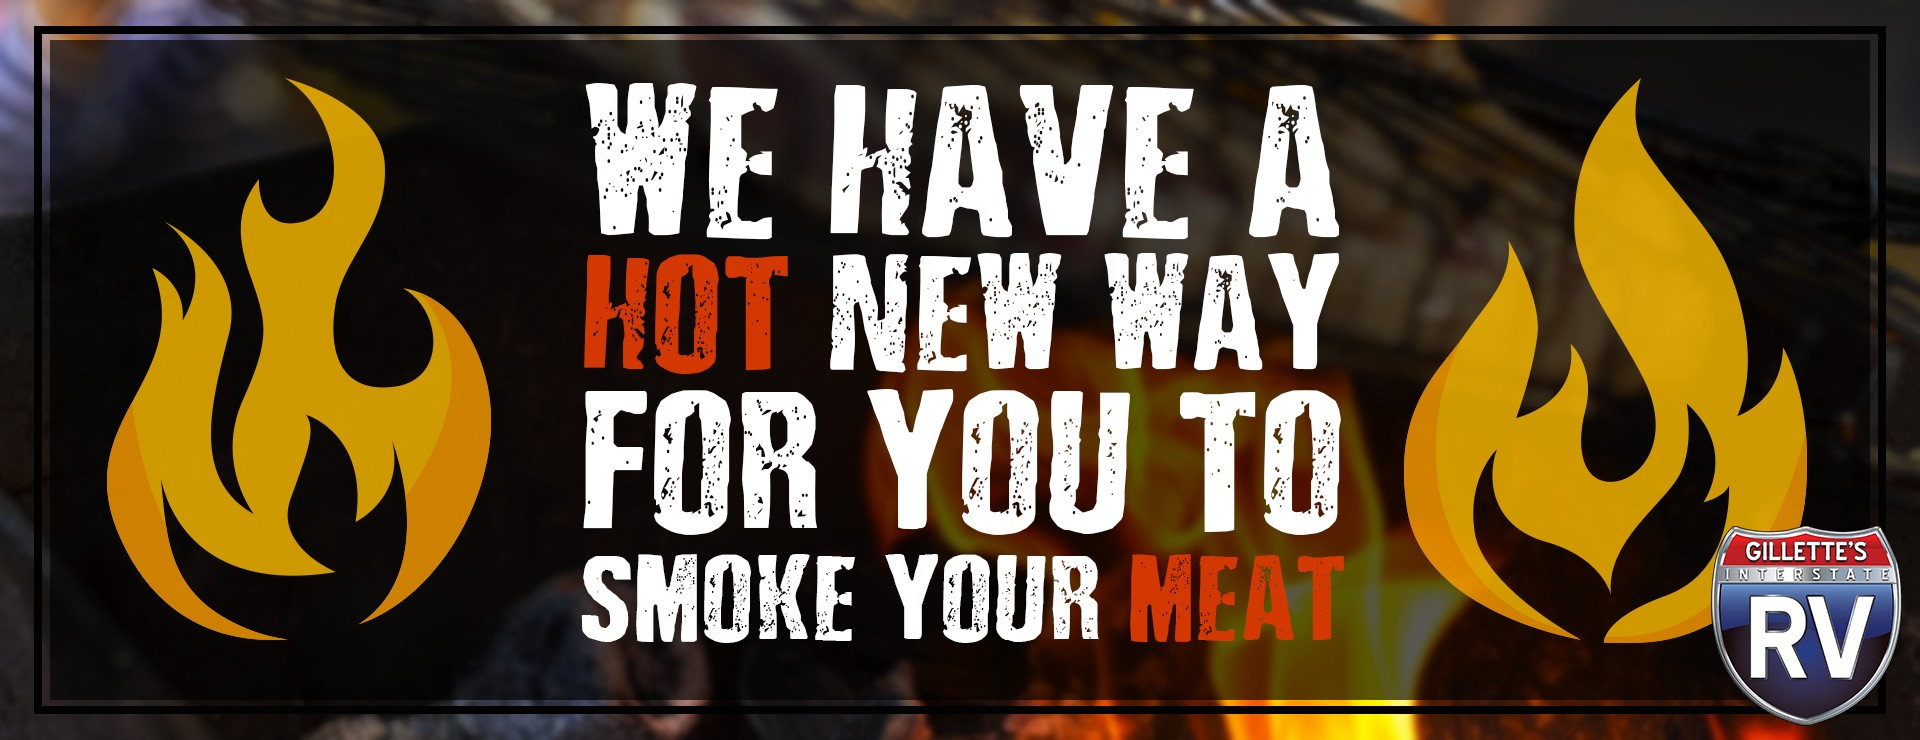 hot new way to smoke your meat